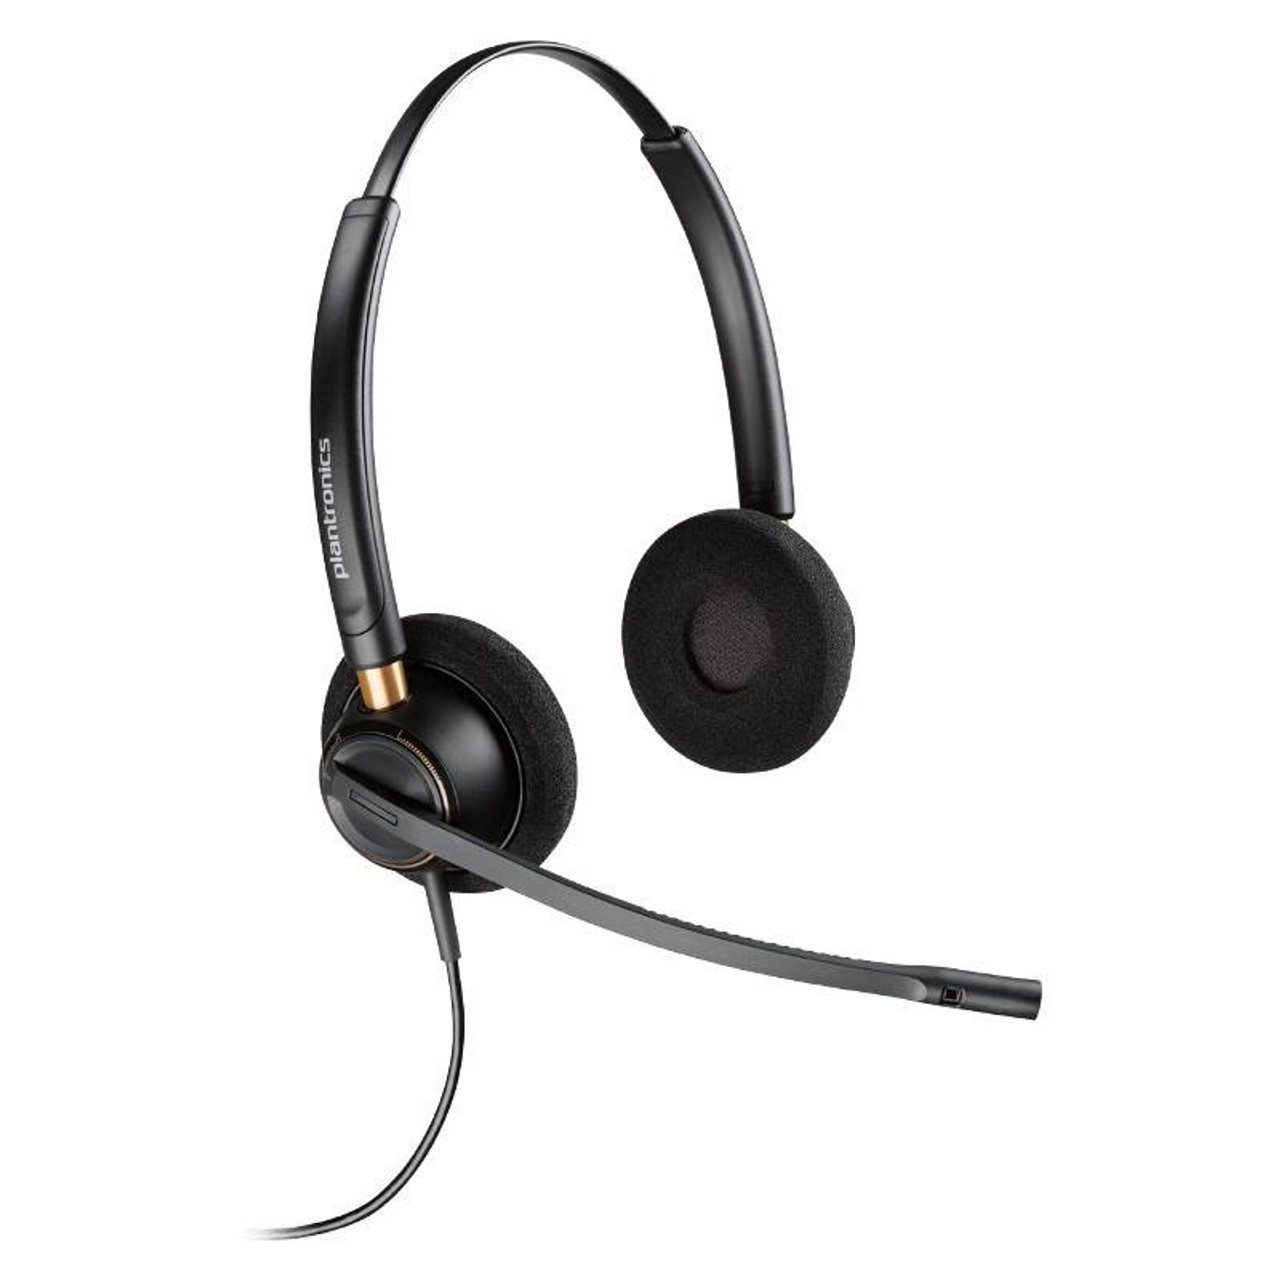 Image for Plantronics EncorePro HW520 Over-the-Head Binaural NC Corded Headset CX Computer Superstore